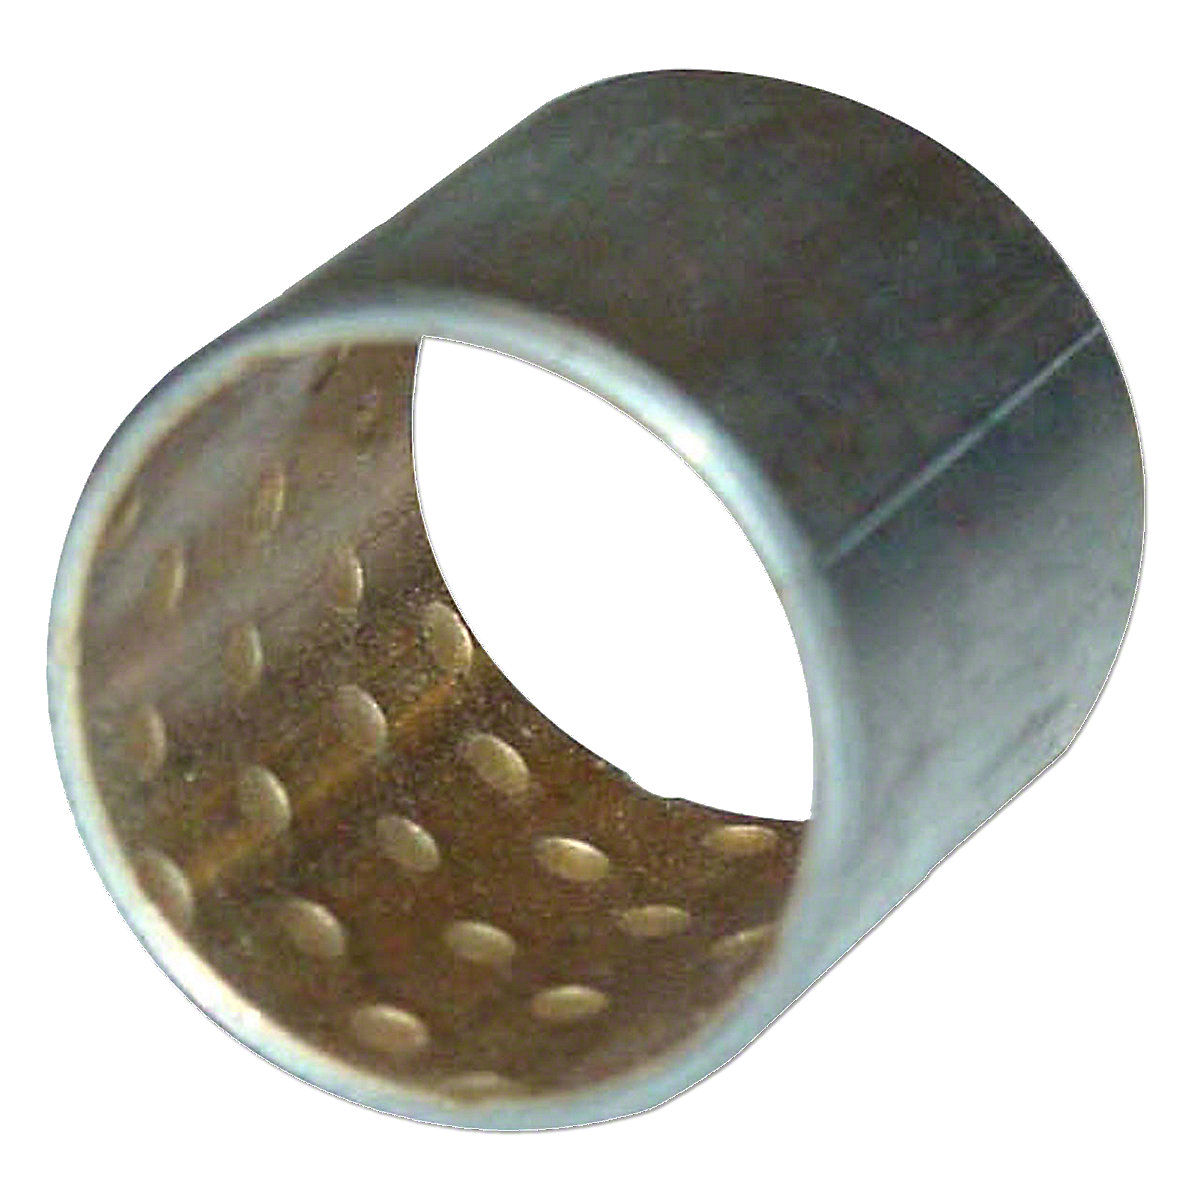 Governor Control Bushing For Allis Chalmers: WD, WD45.